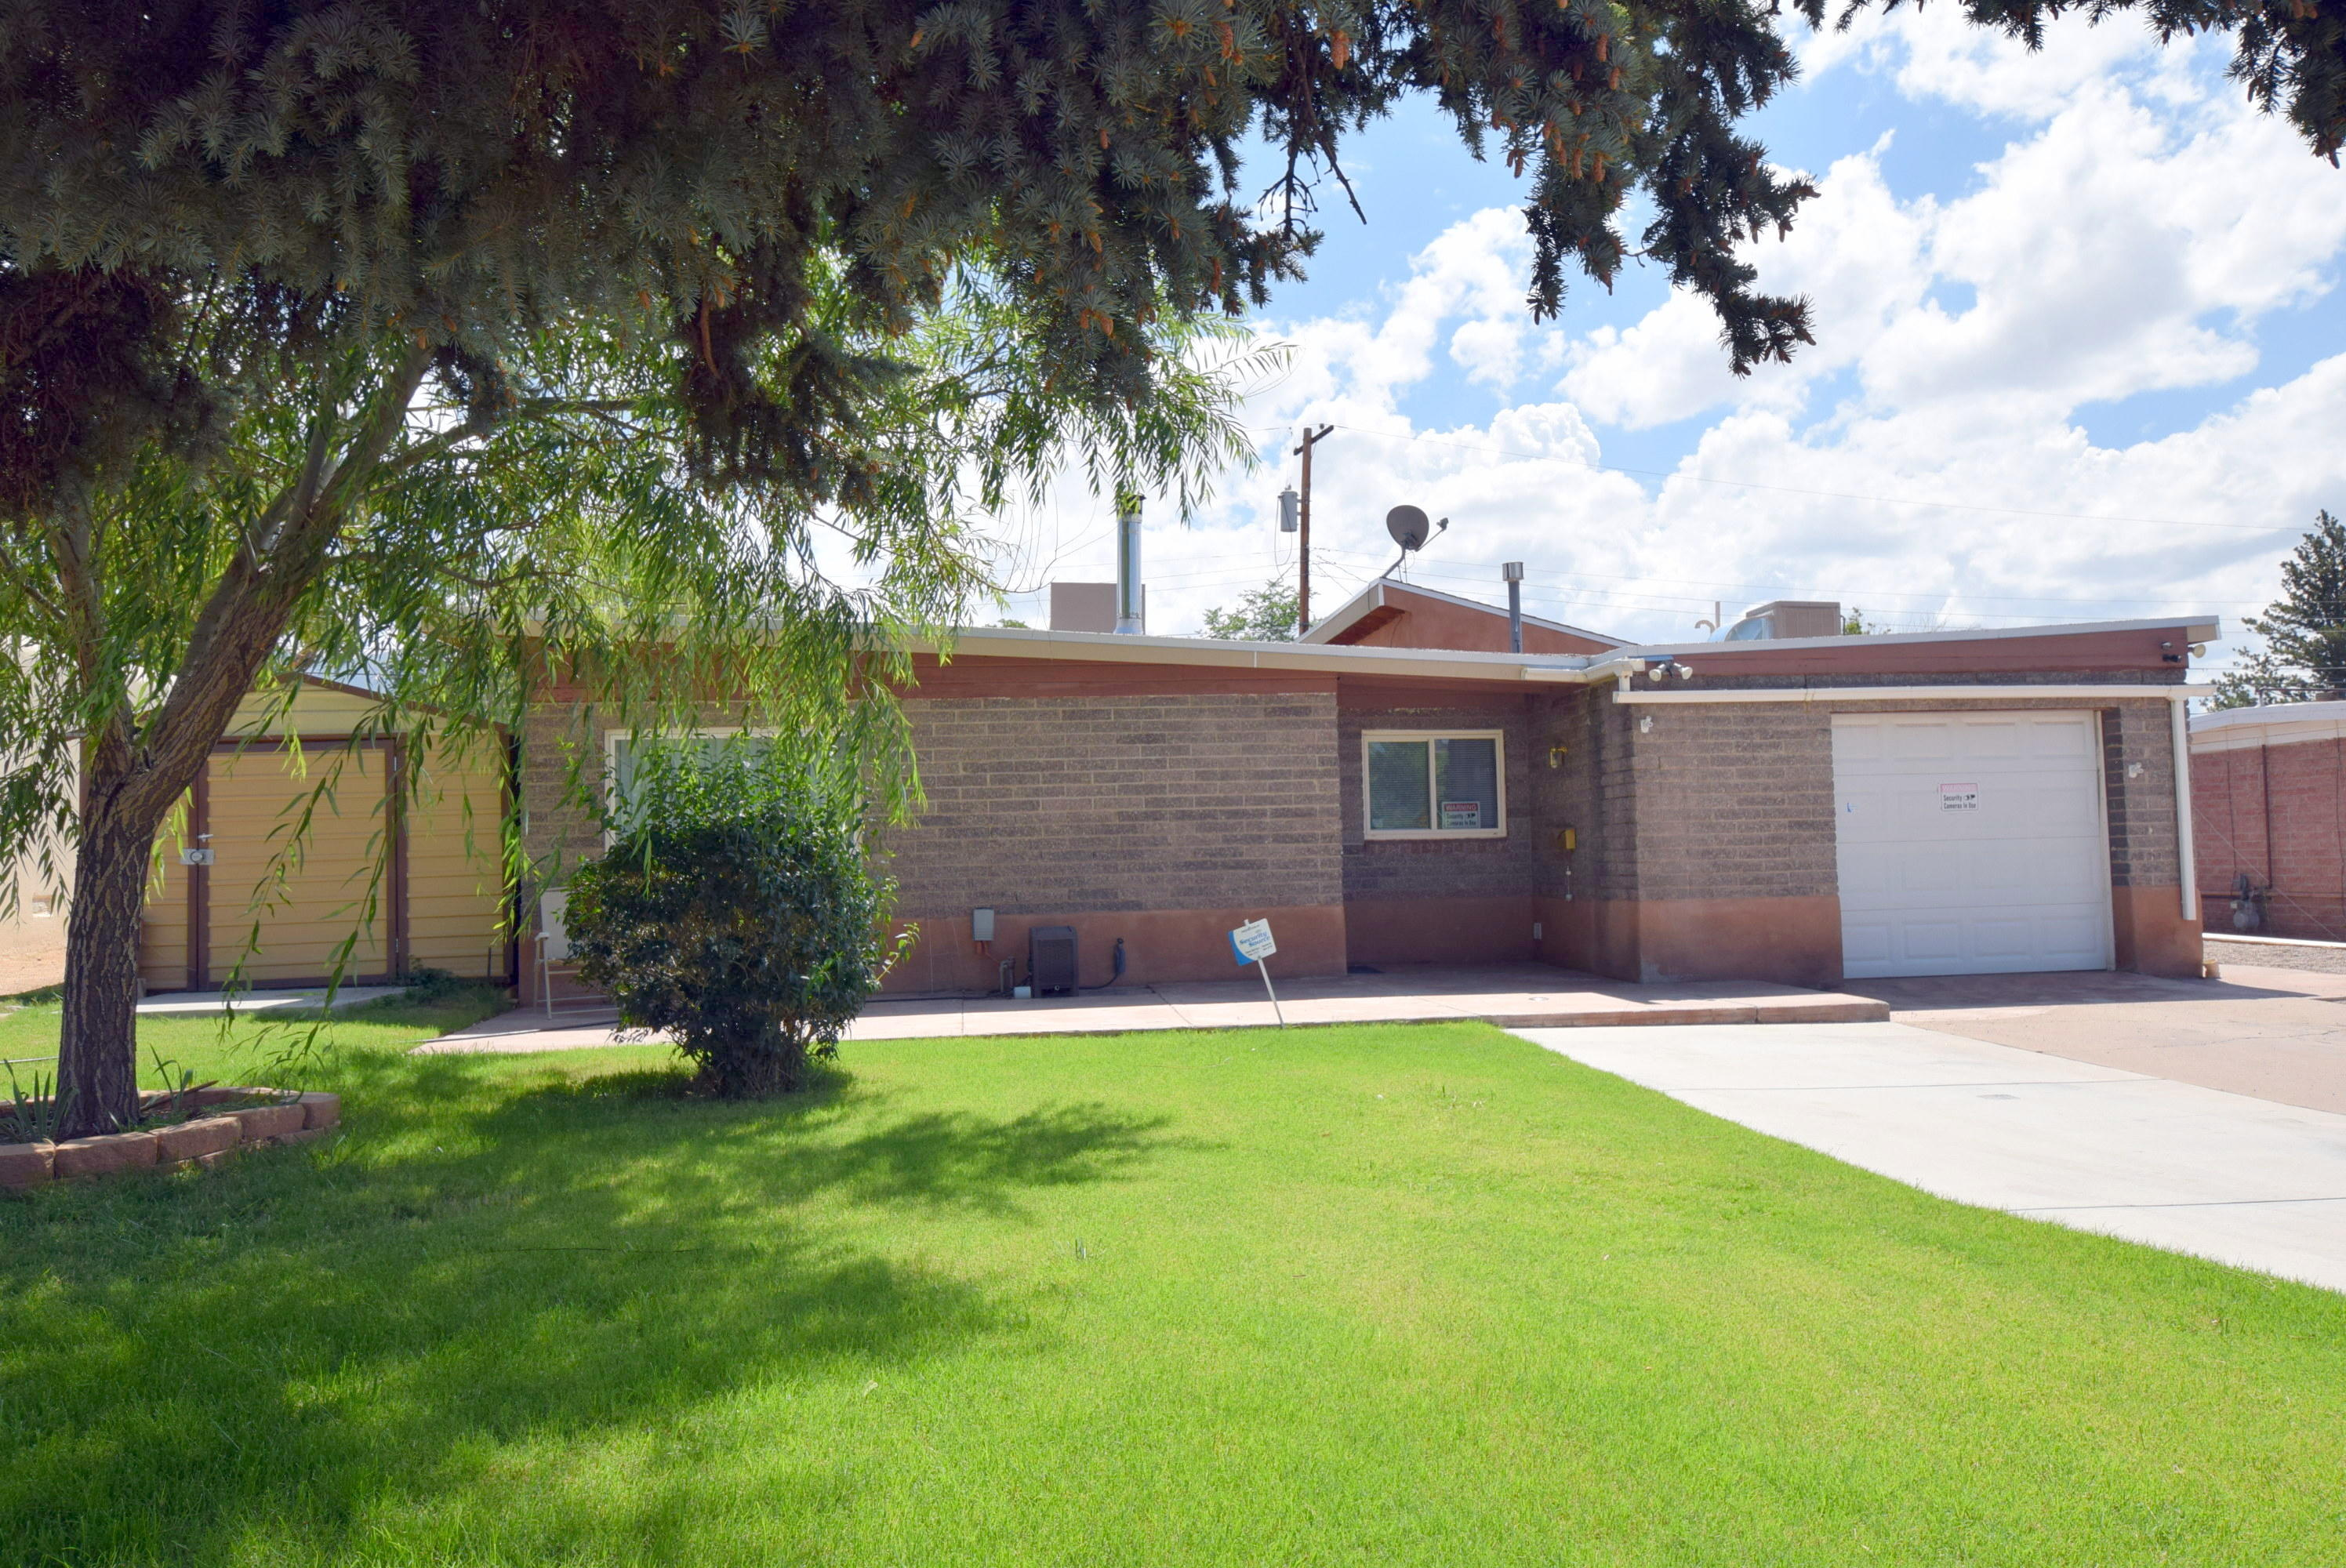 New roof7/21!. Remodeled kitchen with granite counter, bathrooms, additional family room with wood burning stove. Master bedroom is enlarge by opening up to one of the bedrooms. Lot's of possibilities for easy bedroom reconfiguration if you want 3 or 4 or even 5 bedrooms. Currently the office is off the front living area. Could be an office or nursey or even a art studio.  Family room with wood burning / pellet stove, opens to backyard with covered patio, fountain, gazebo, dog run and garden area, with storage. Living room has space for  wood burning stove with capped chimney and reinforced floor. Partially finished garage with laminate flooring, and cooling and work benches and TV conveys.